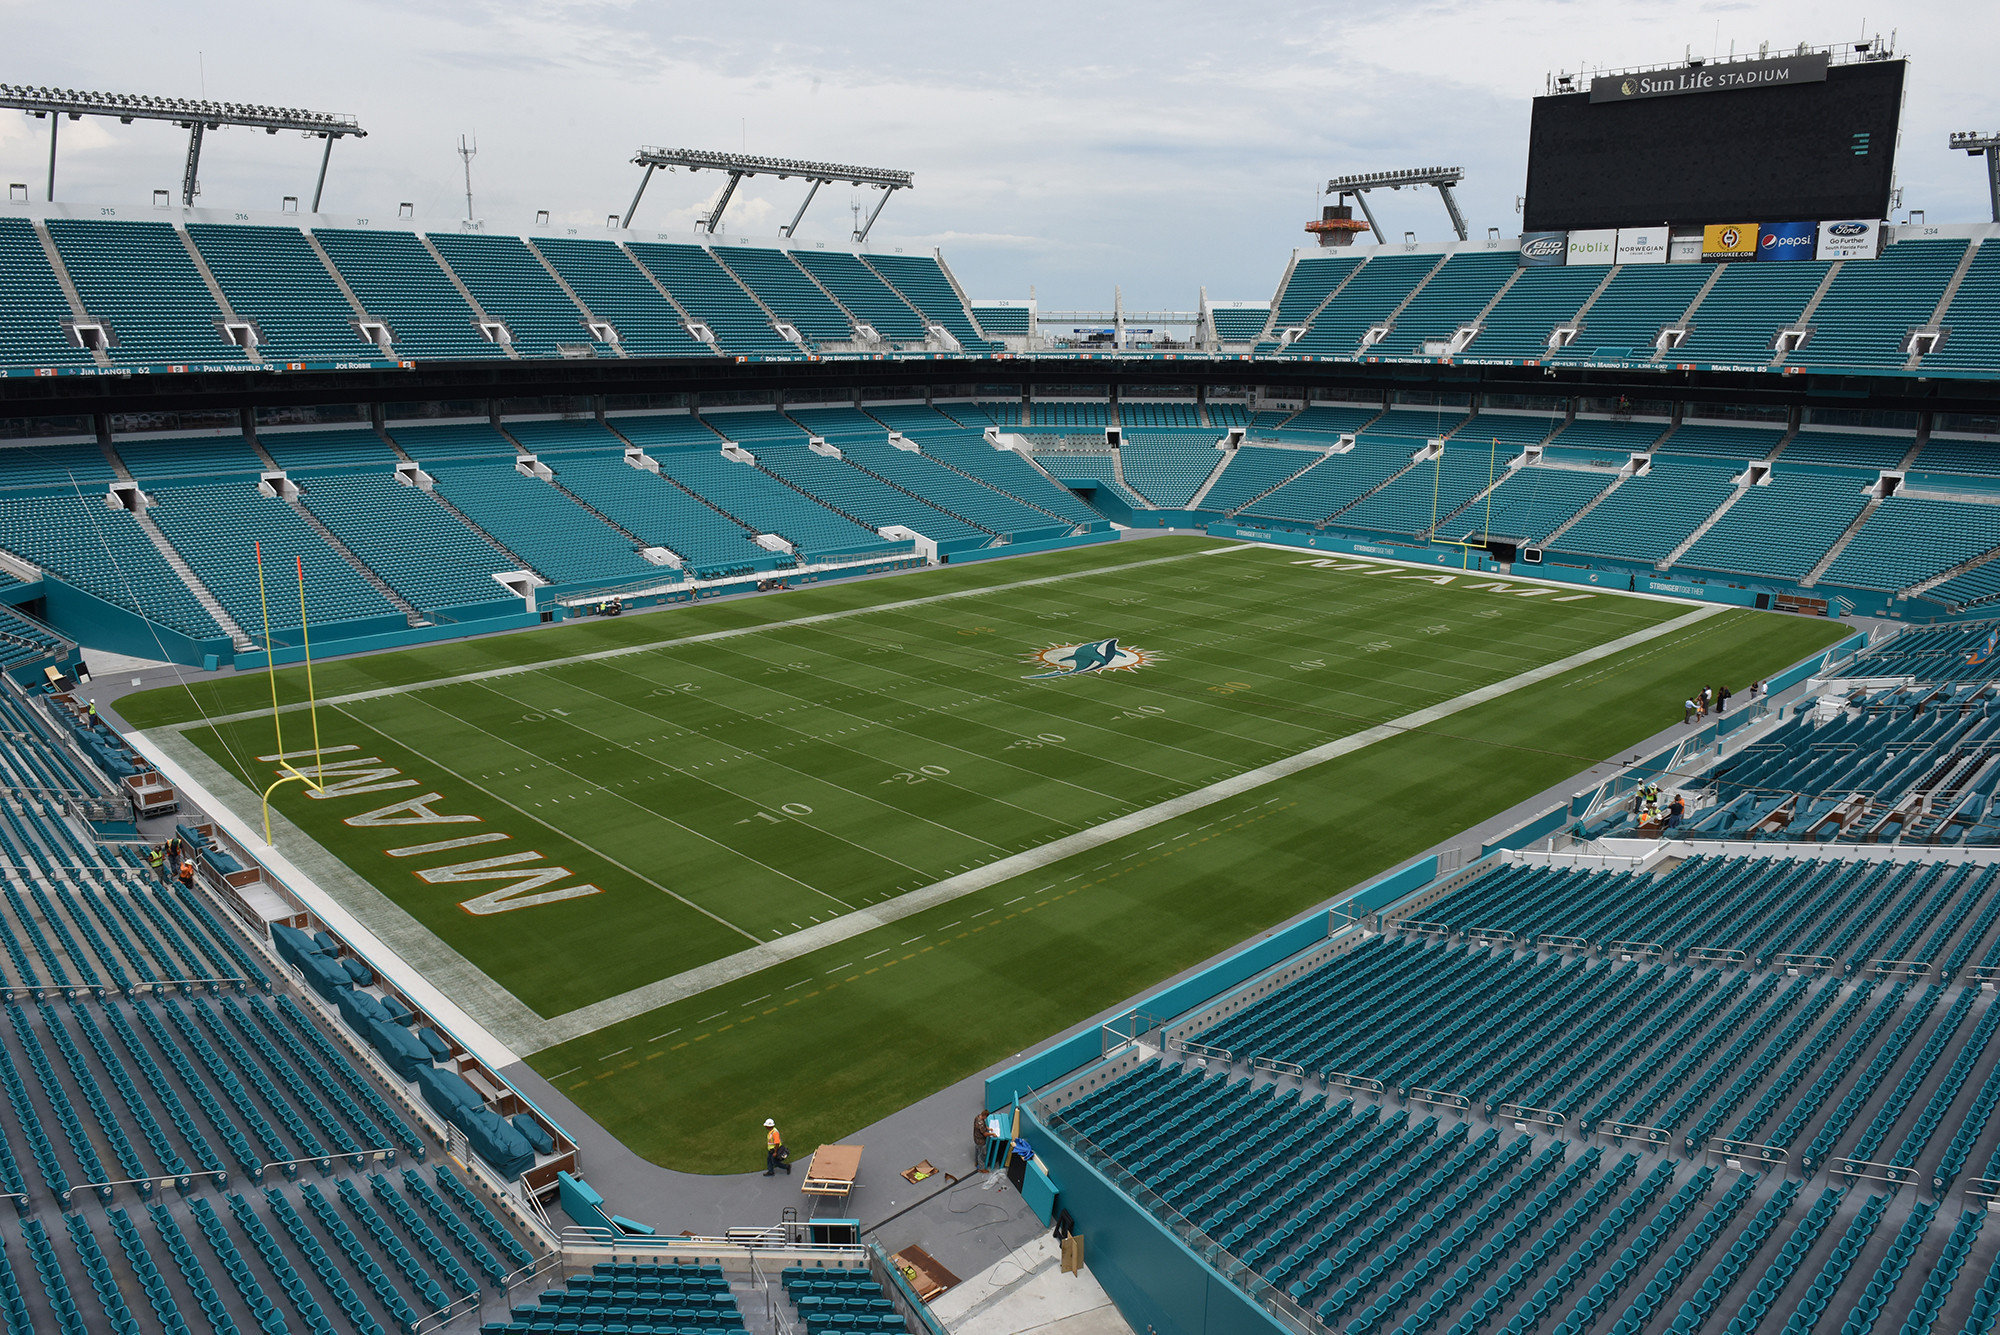 Sfl-um-exploring-options-if-stadium-renovations-not-finished-ahead-of-sept-3-opener-20160502